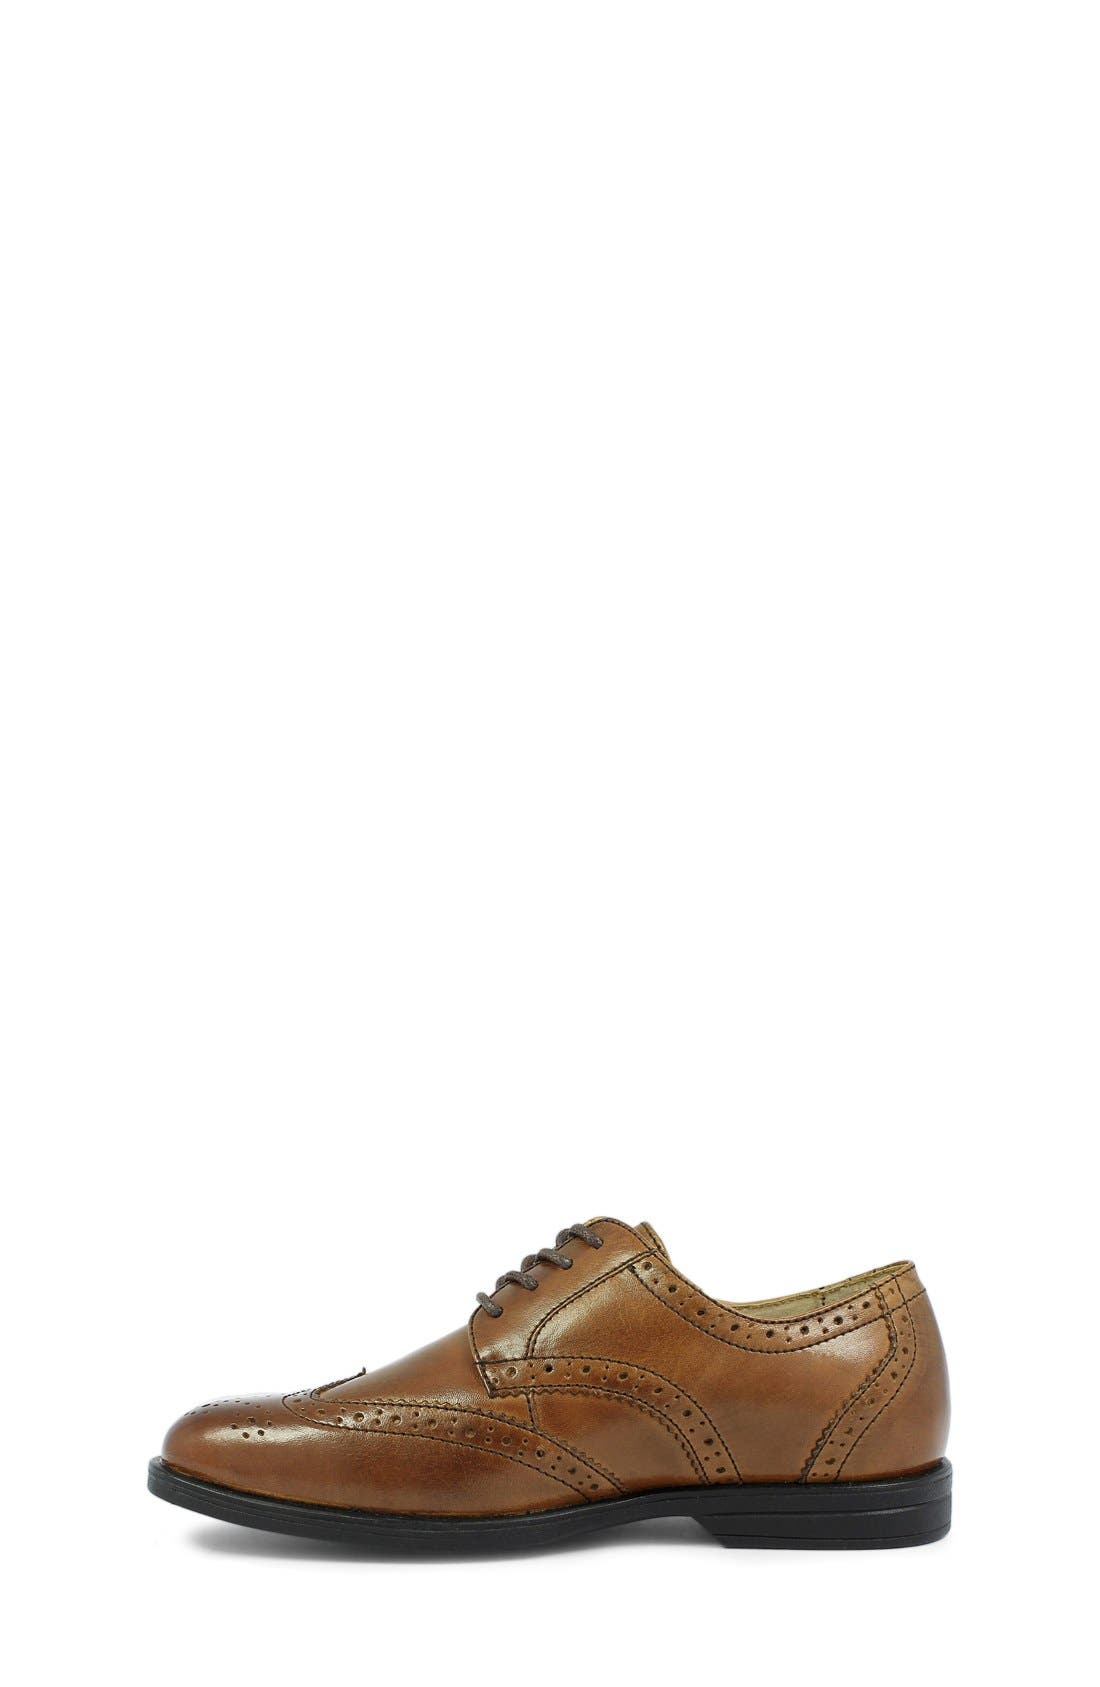 'Reveal' Wingtip Oxford,                             Alternate thumbnail 2, color,                             COGNAC LEATHER